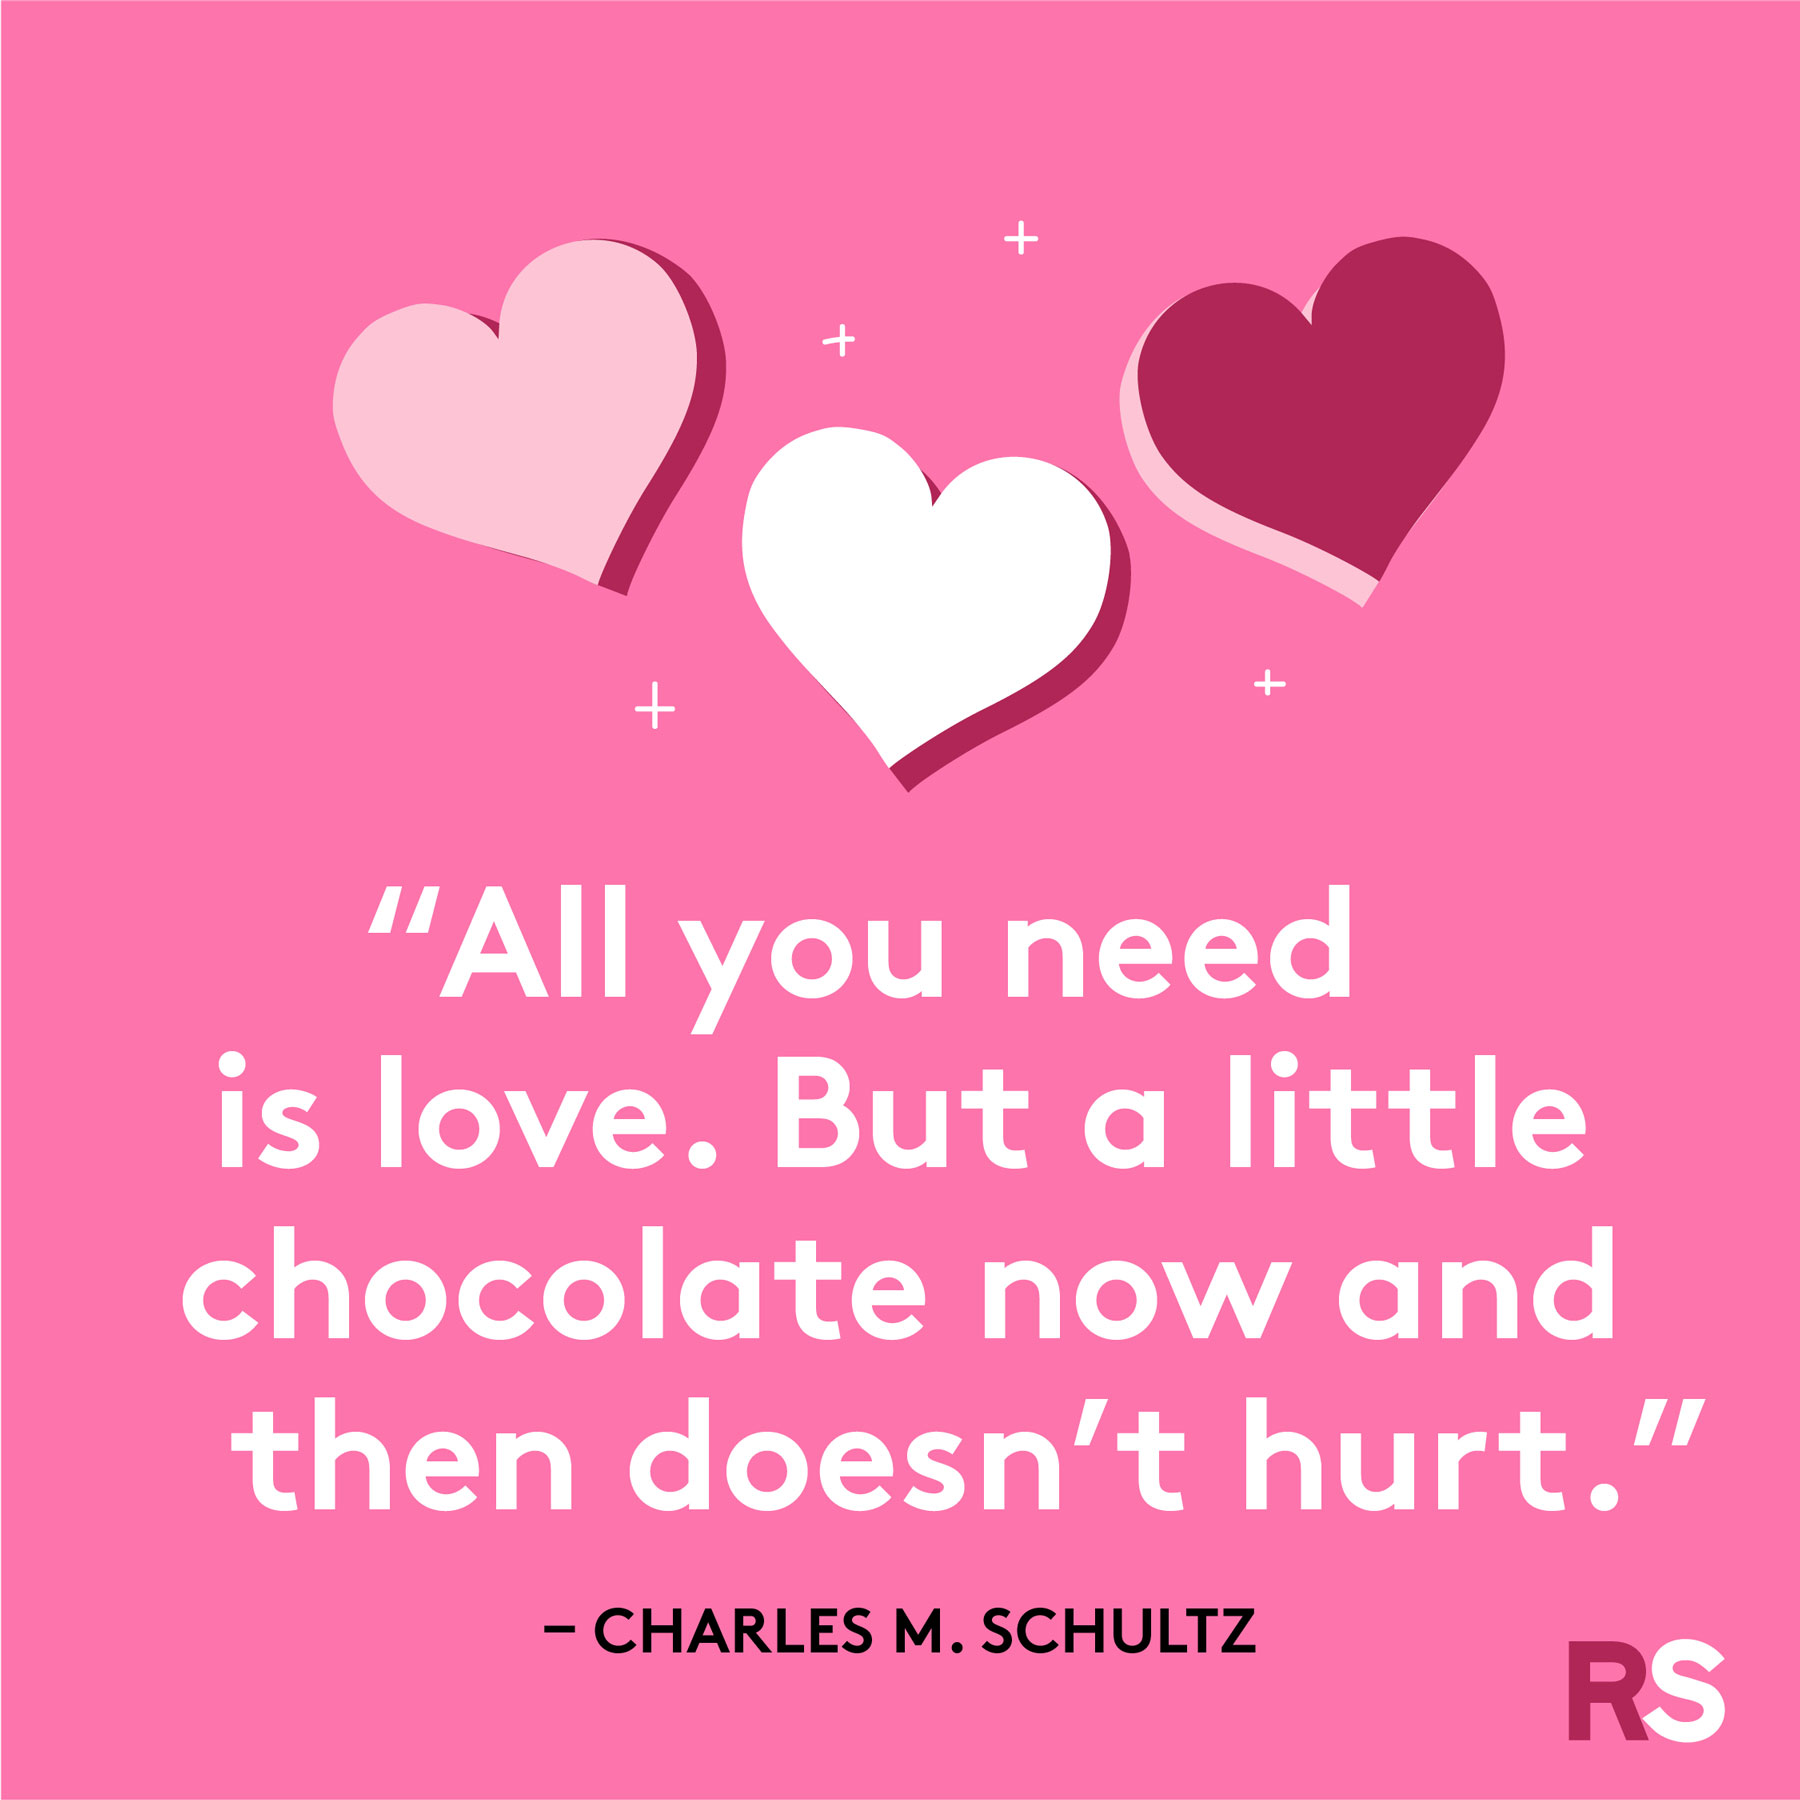 Love quotes, quotes about love - Charles M. Schultz